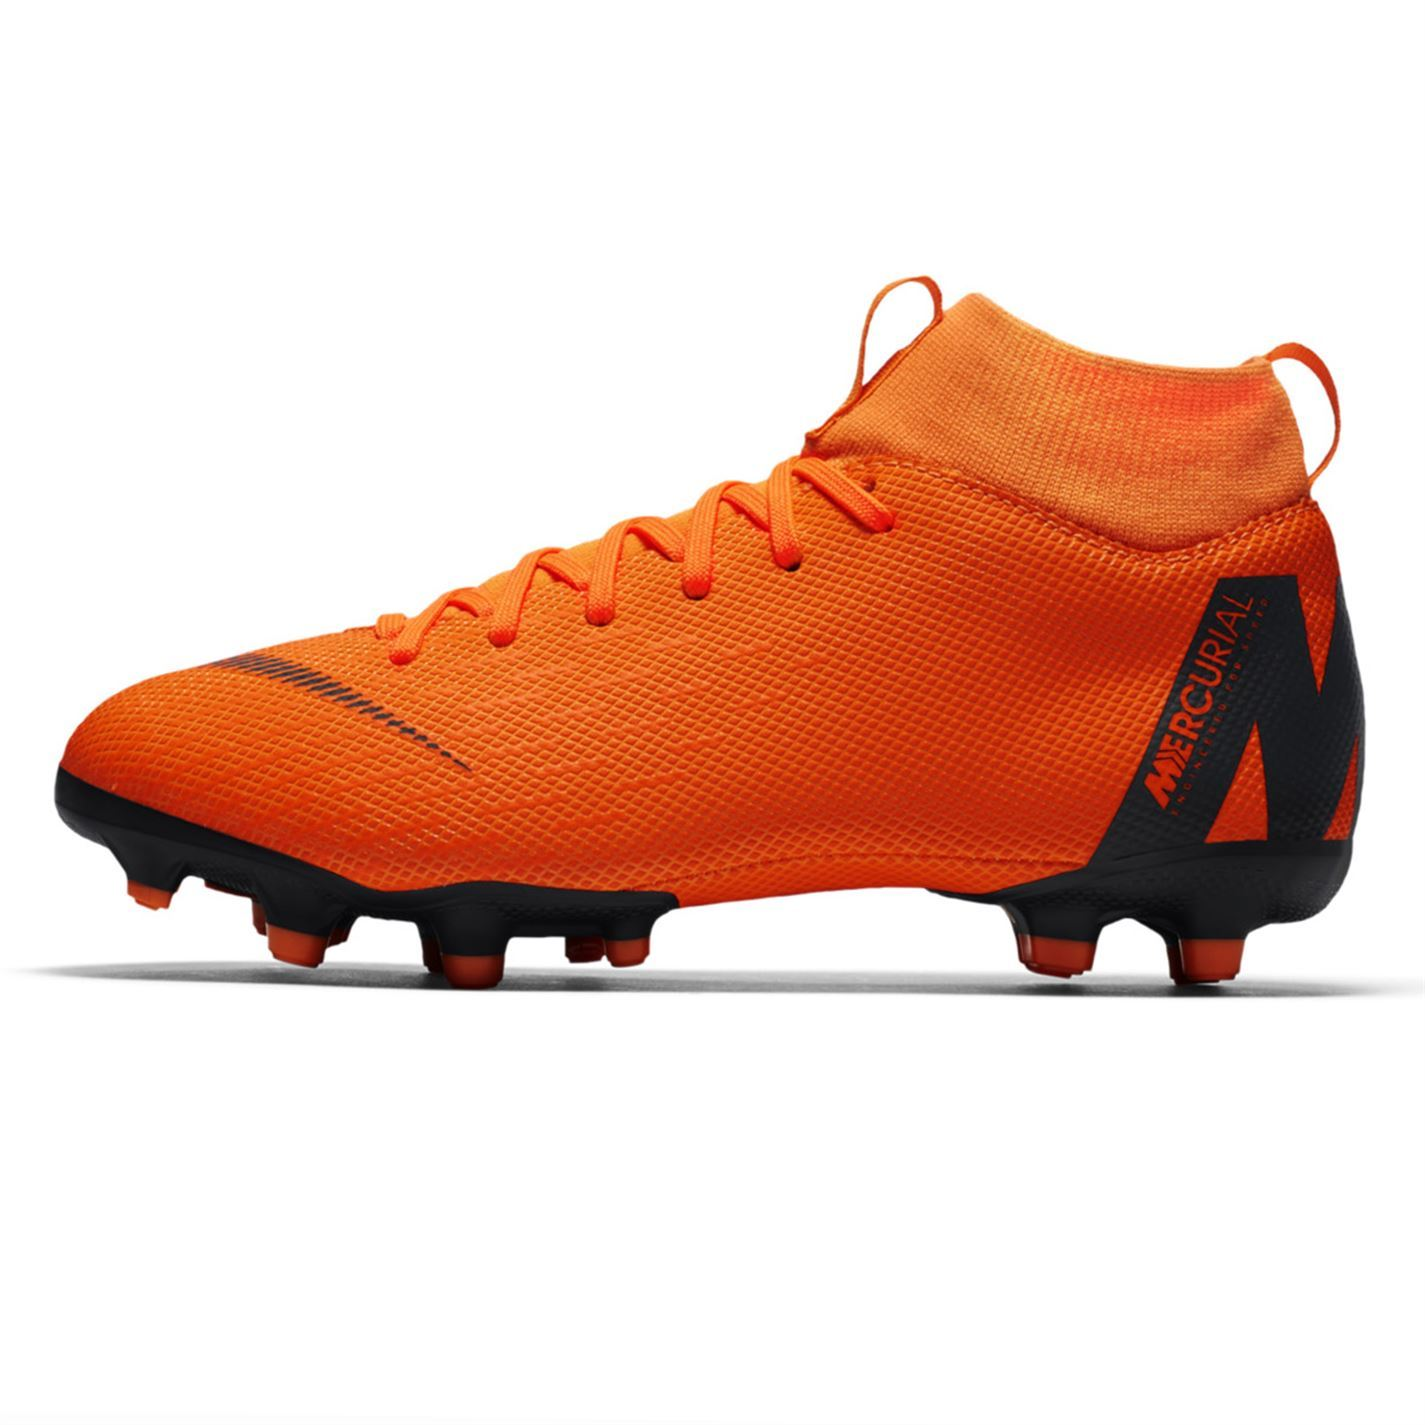 separation shoes 23beb c326d ... Nike Mercurial Superfly Academy FG Football Boots Juniors Orange Soccer  Cleats ...